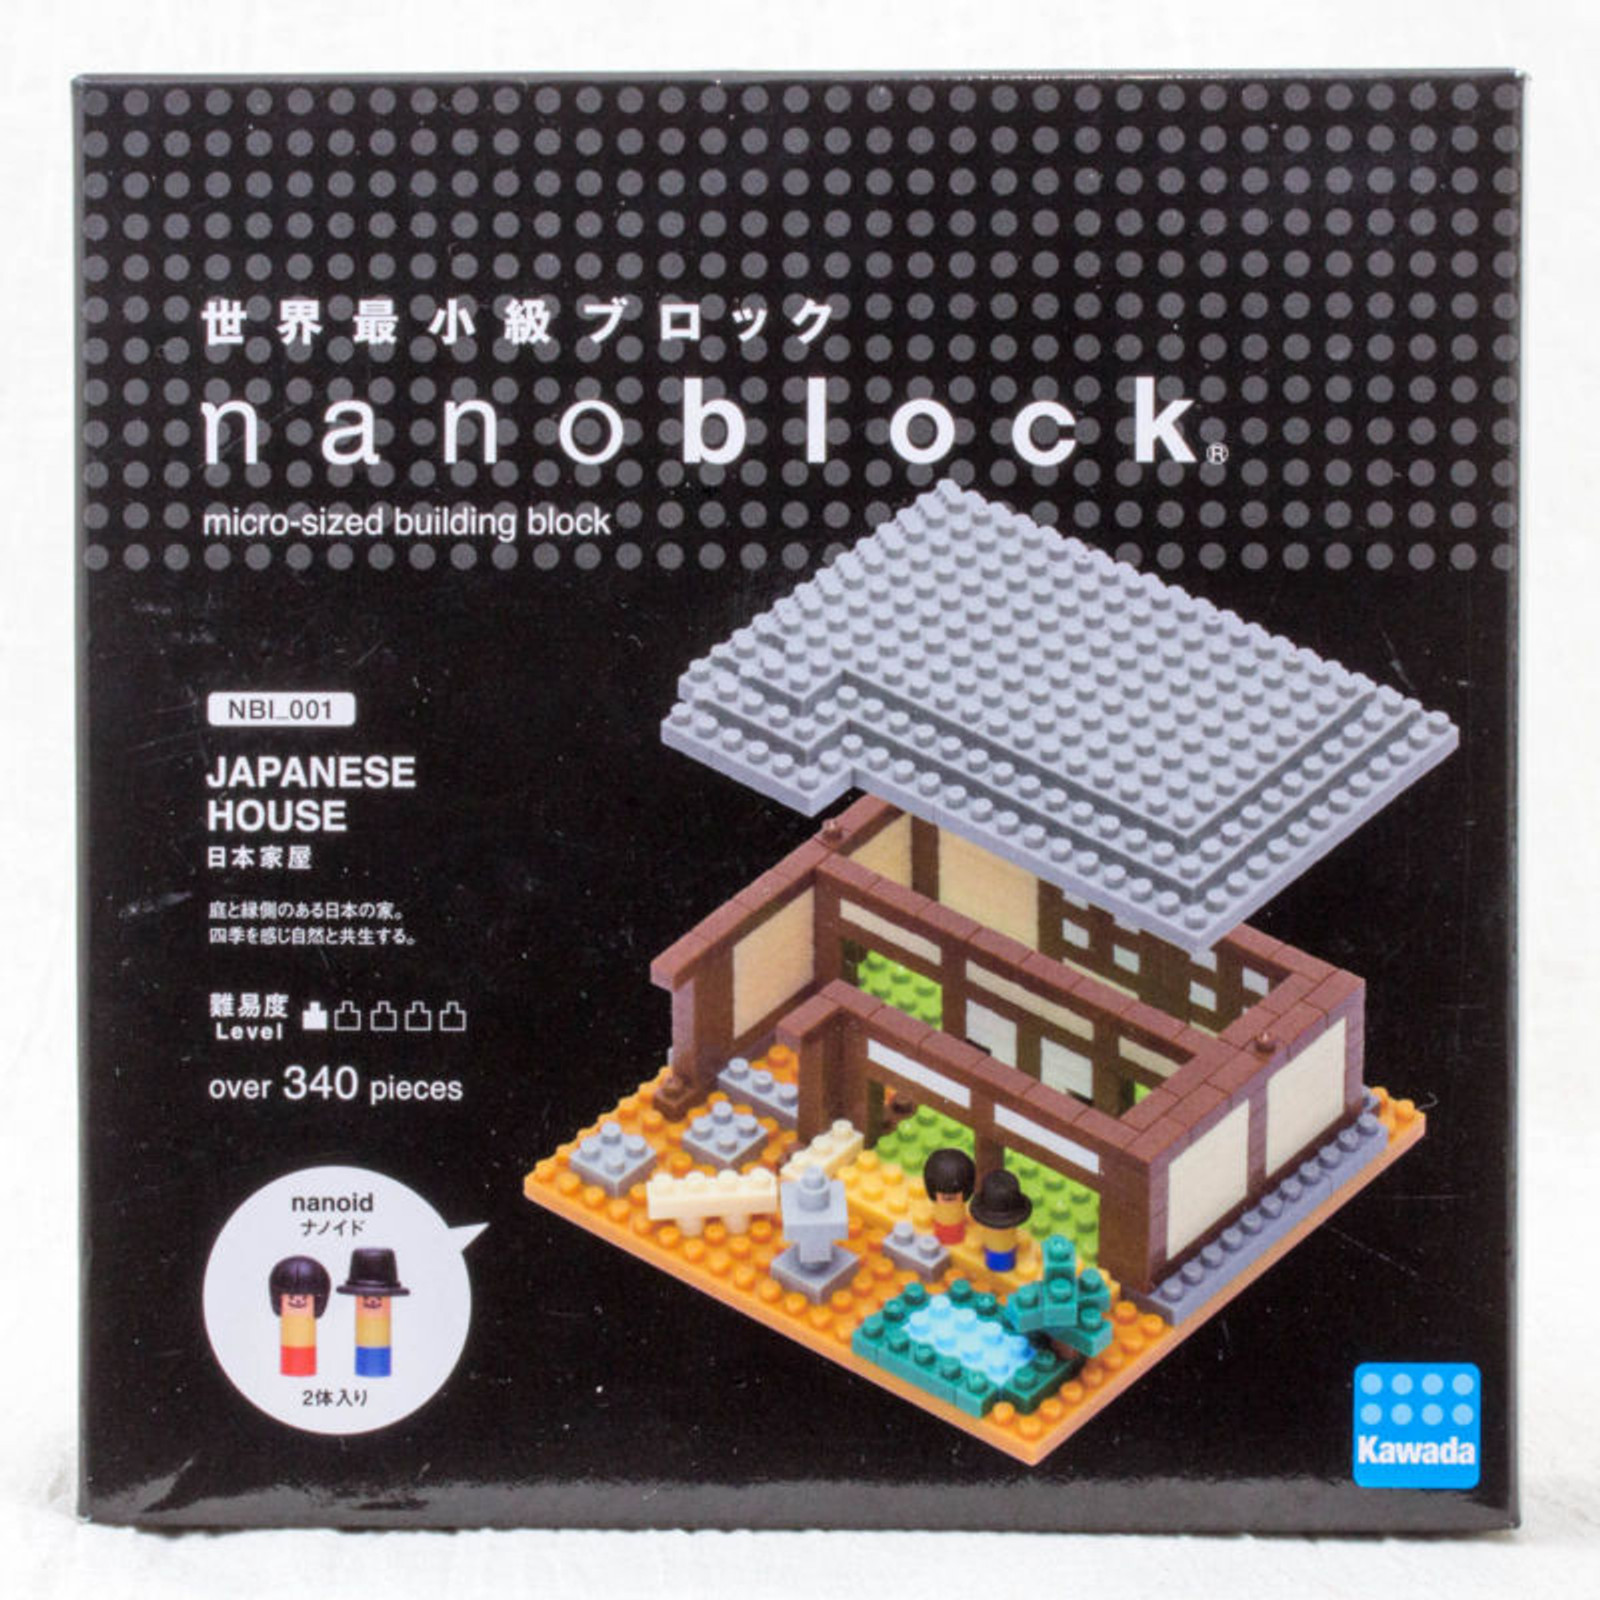 Japanese House Kawada Nanoblock Nano Block NBI-001 JAPAN ANIME MANGA